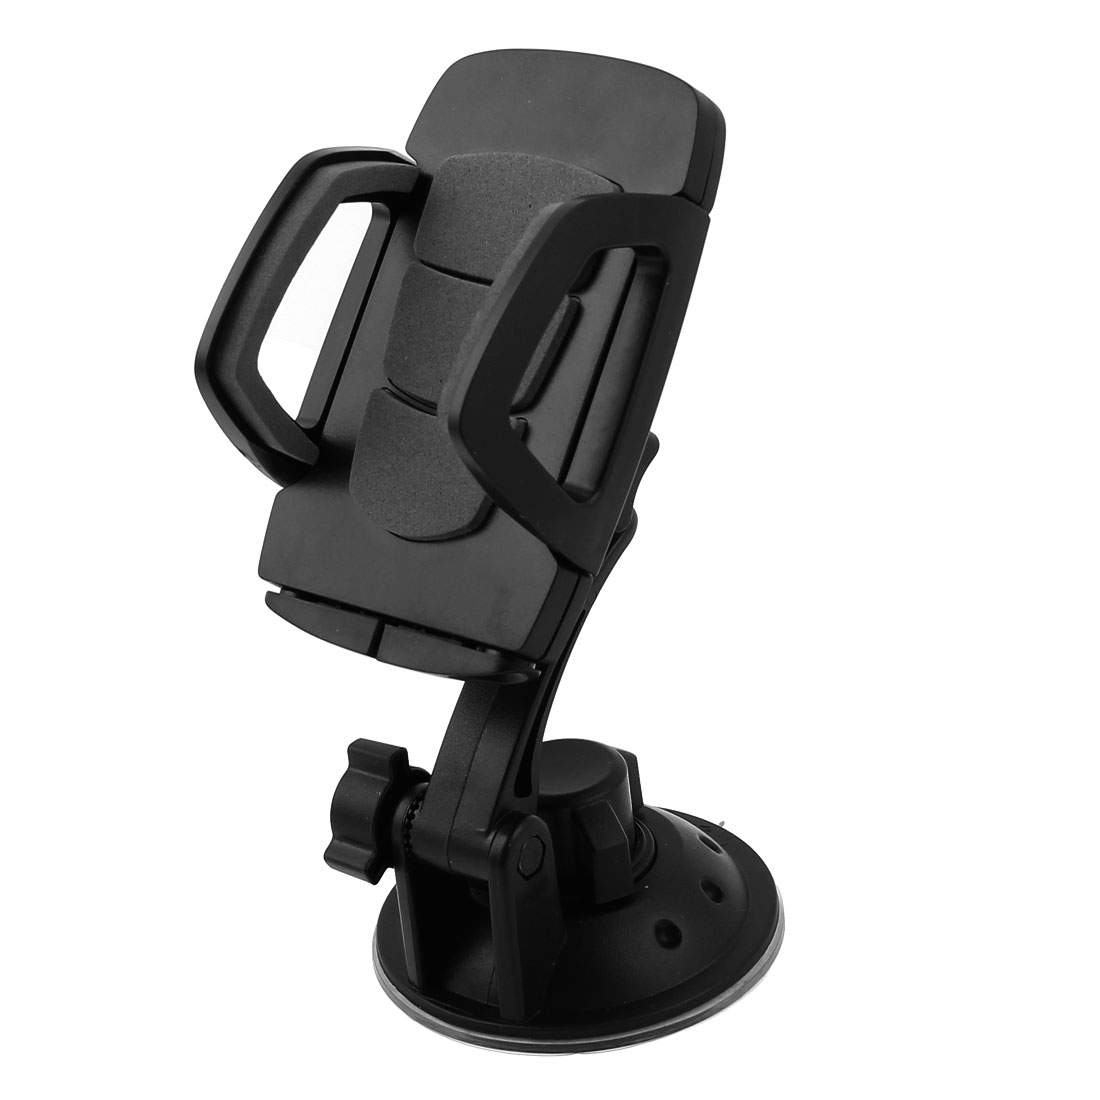 Car Windshield Adjustable Black Plastic Mount Bracket Holder for GPS Cellphone